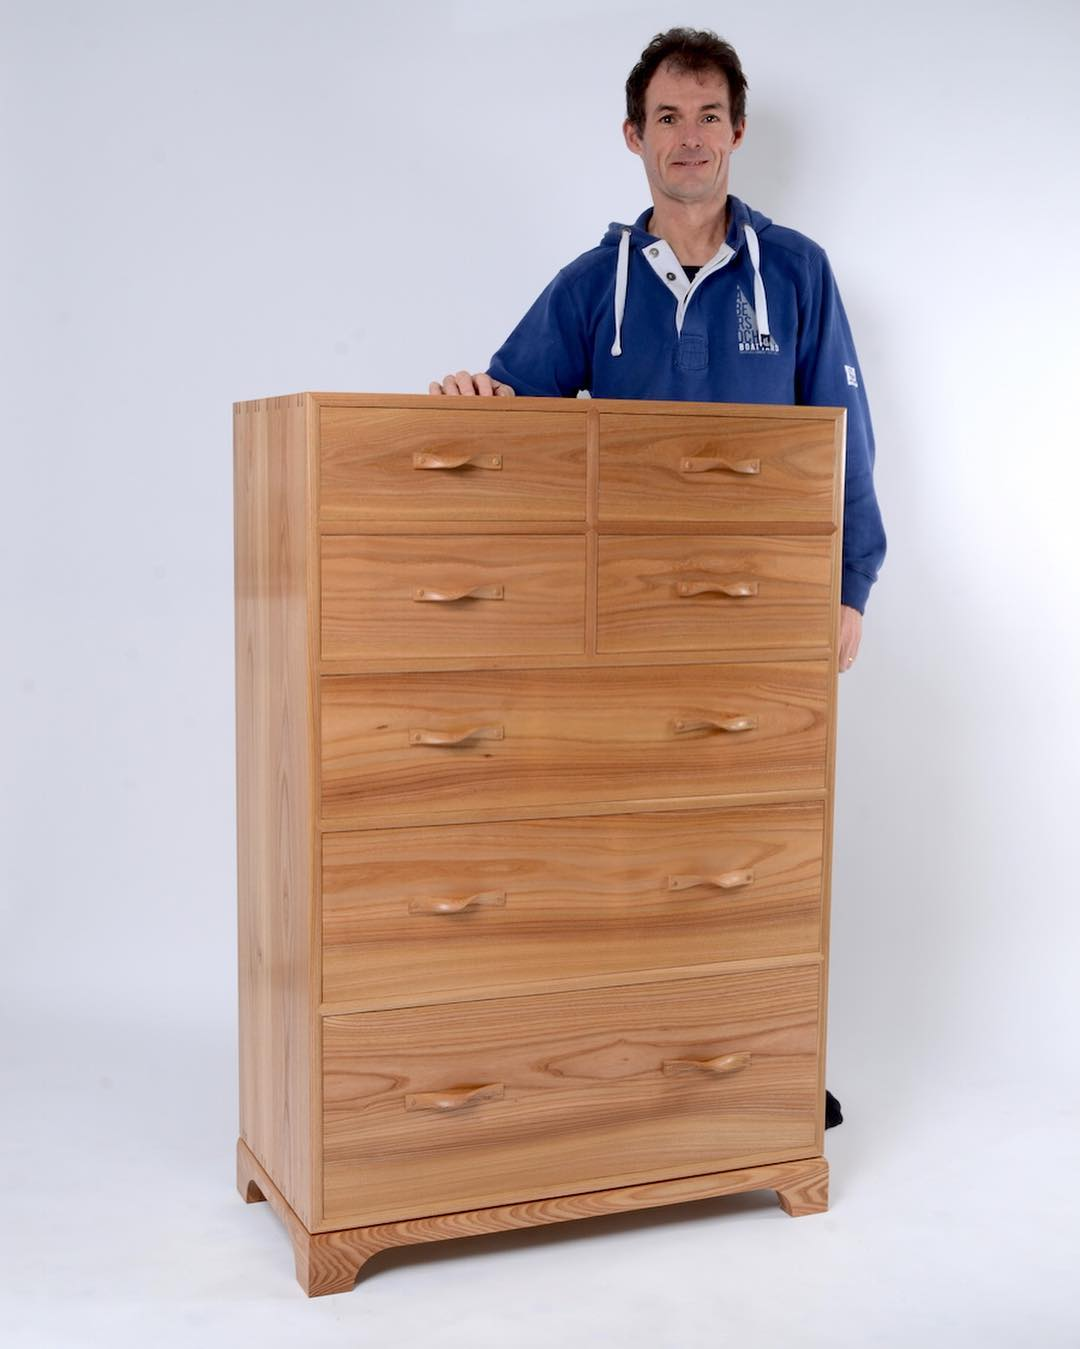 A proud having just completed his first self designed piece. The 'Farfalle' chest.